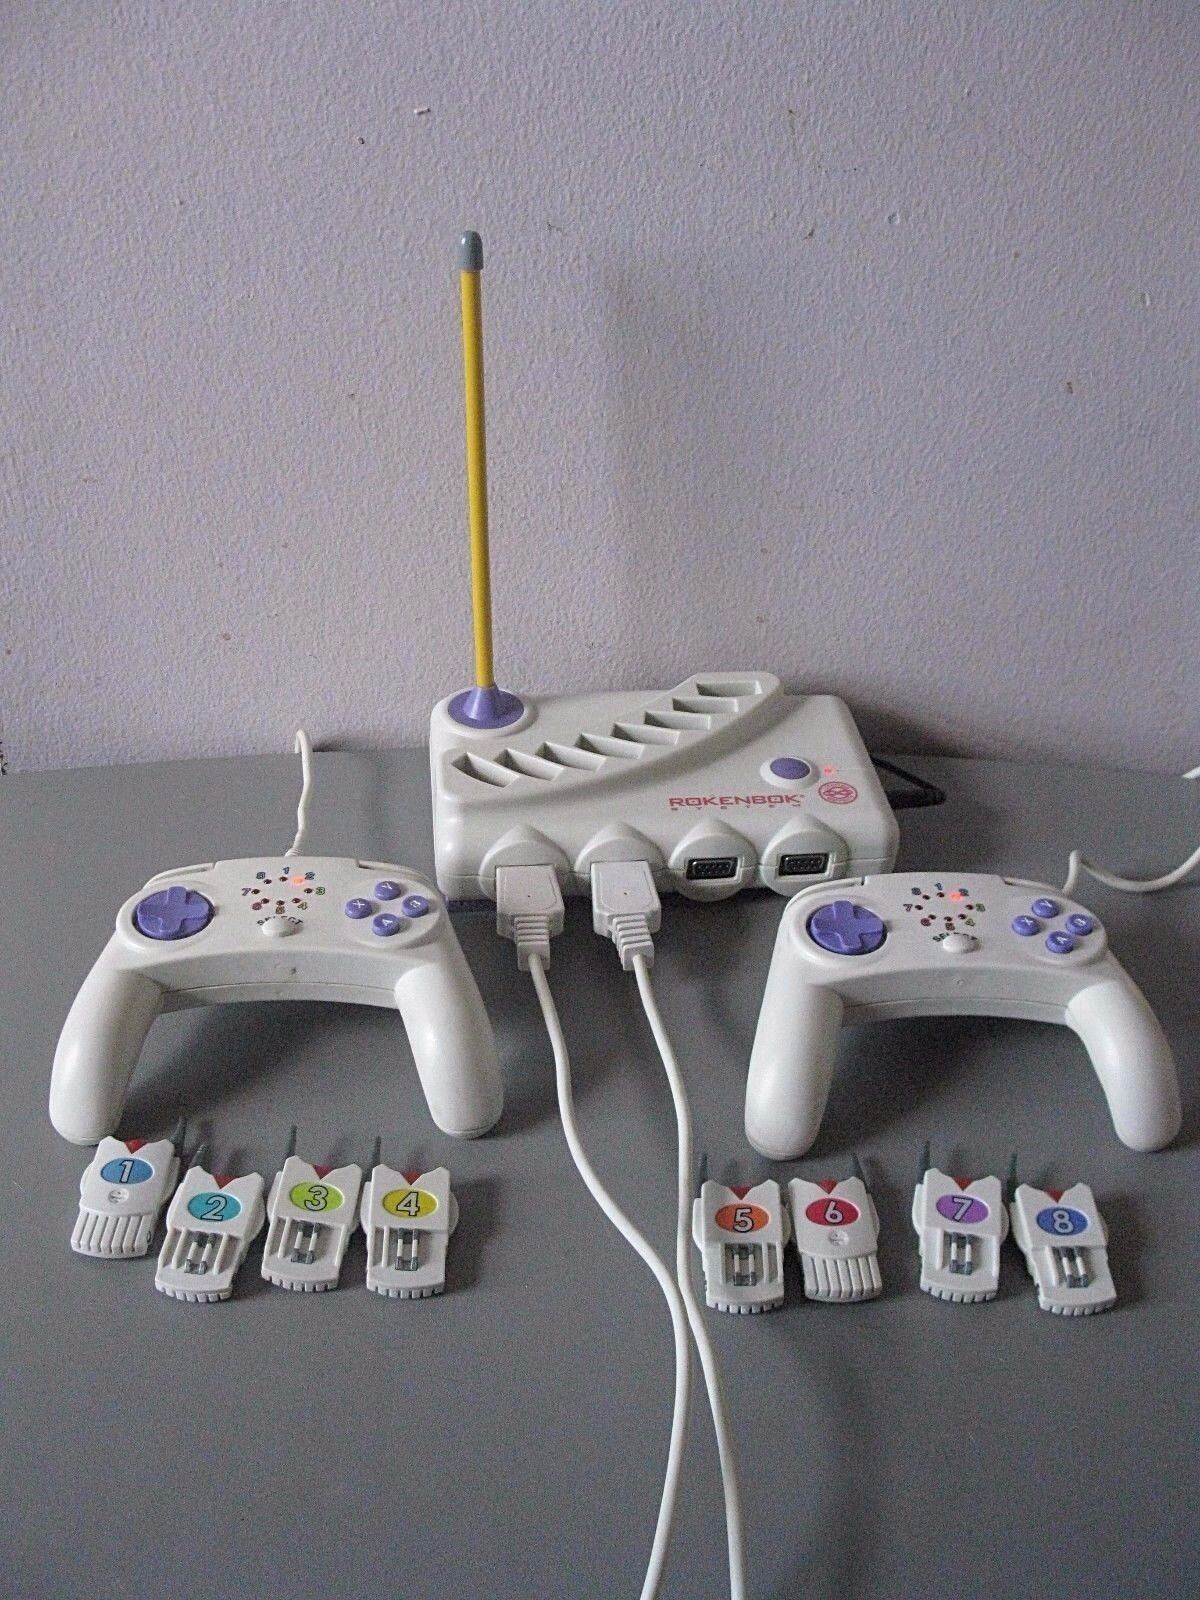 ROKENBOK REMOTE CONTROL CONTROLLER CENTER -- LEGACY PLUS CONTROLLERS